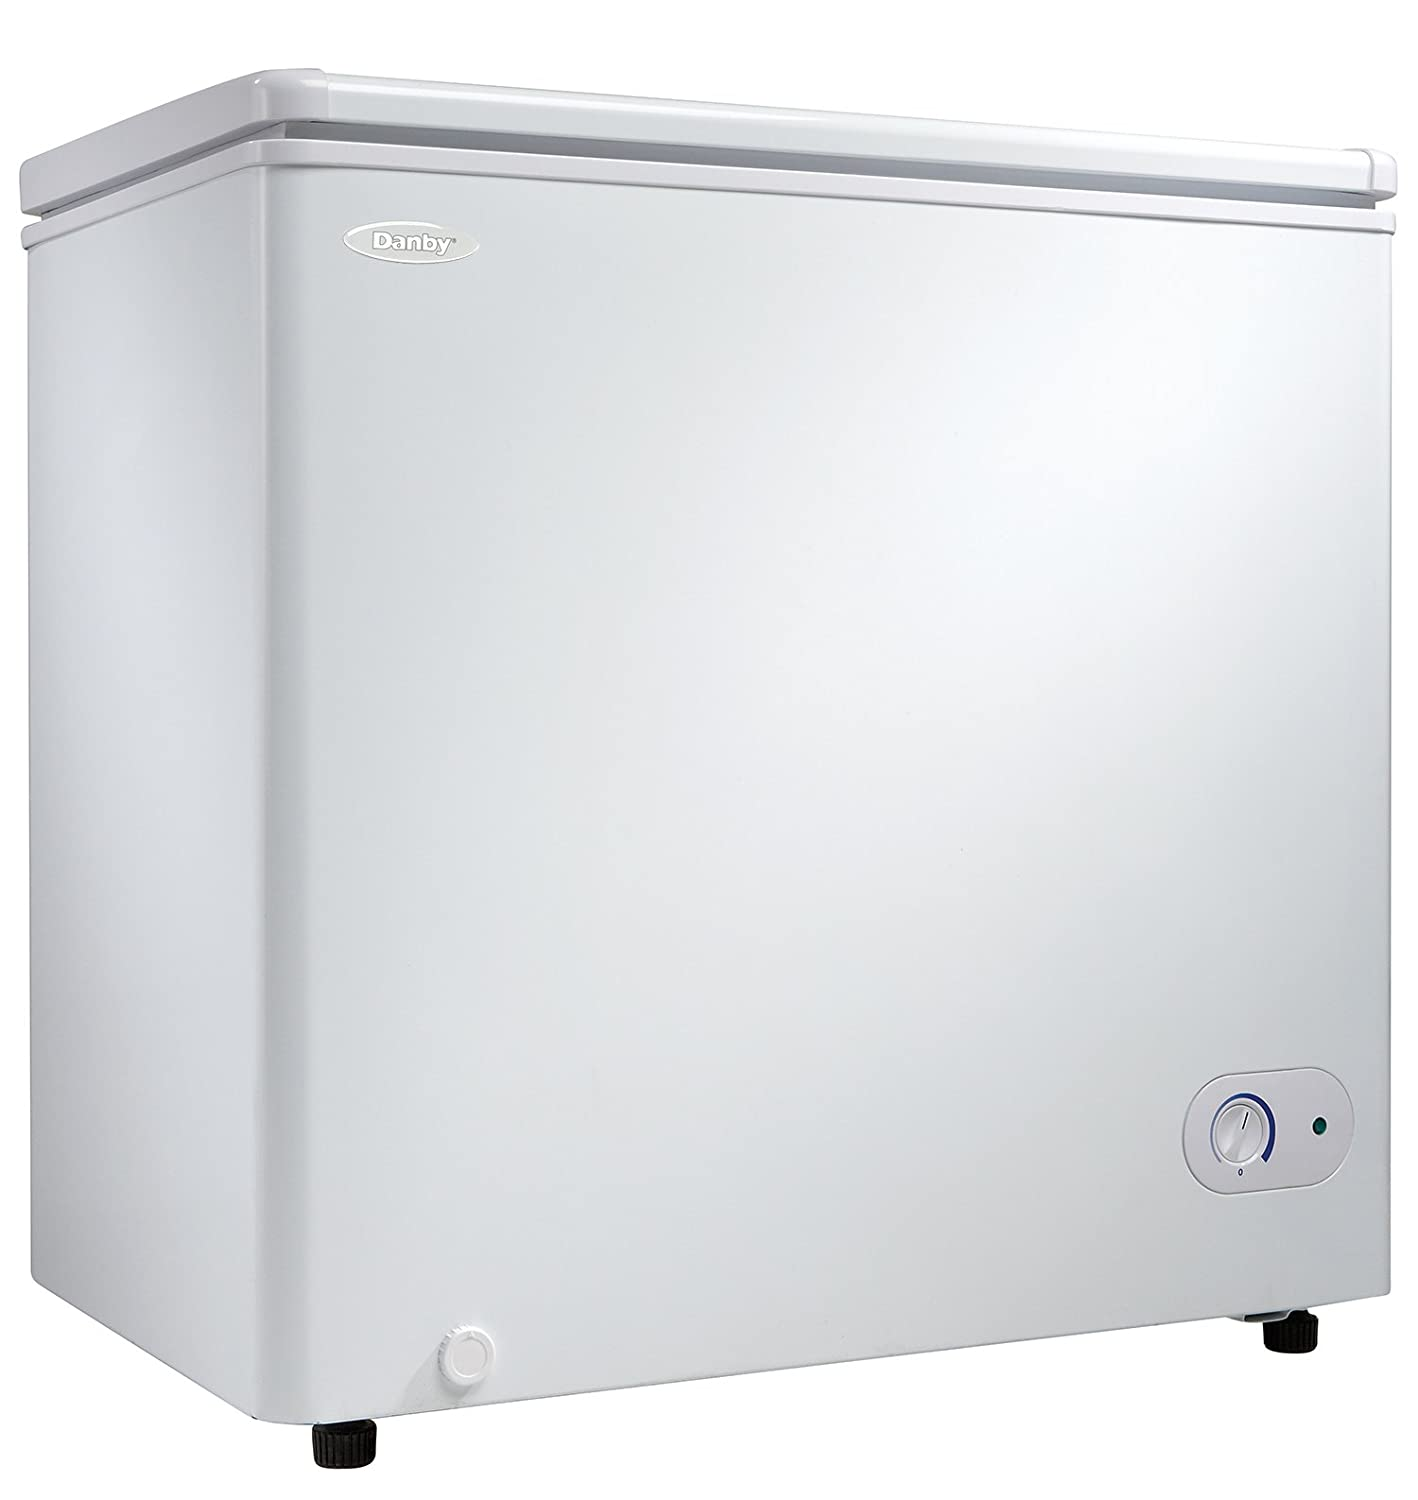 amazoncom danby chest freezer 55 cubic feet white appliances - Chest Freezers On Sale